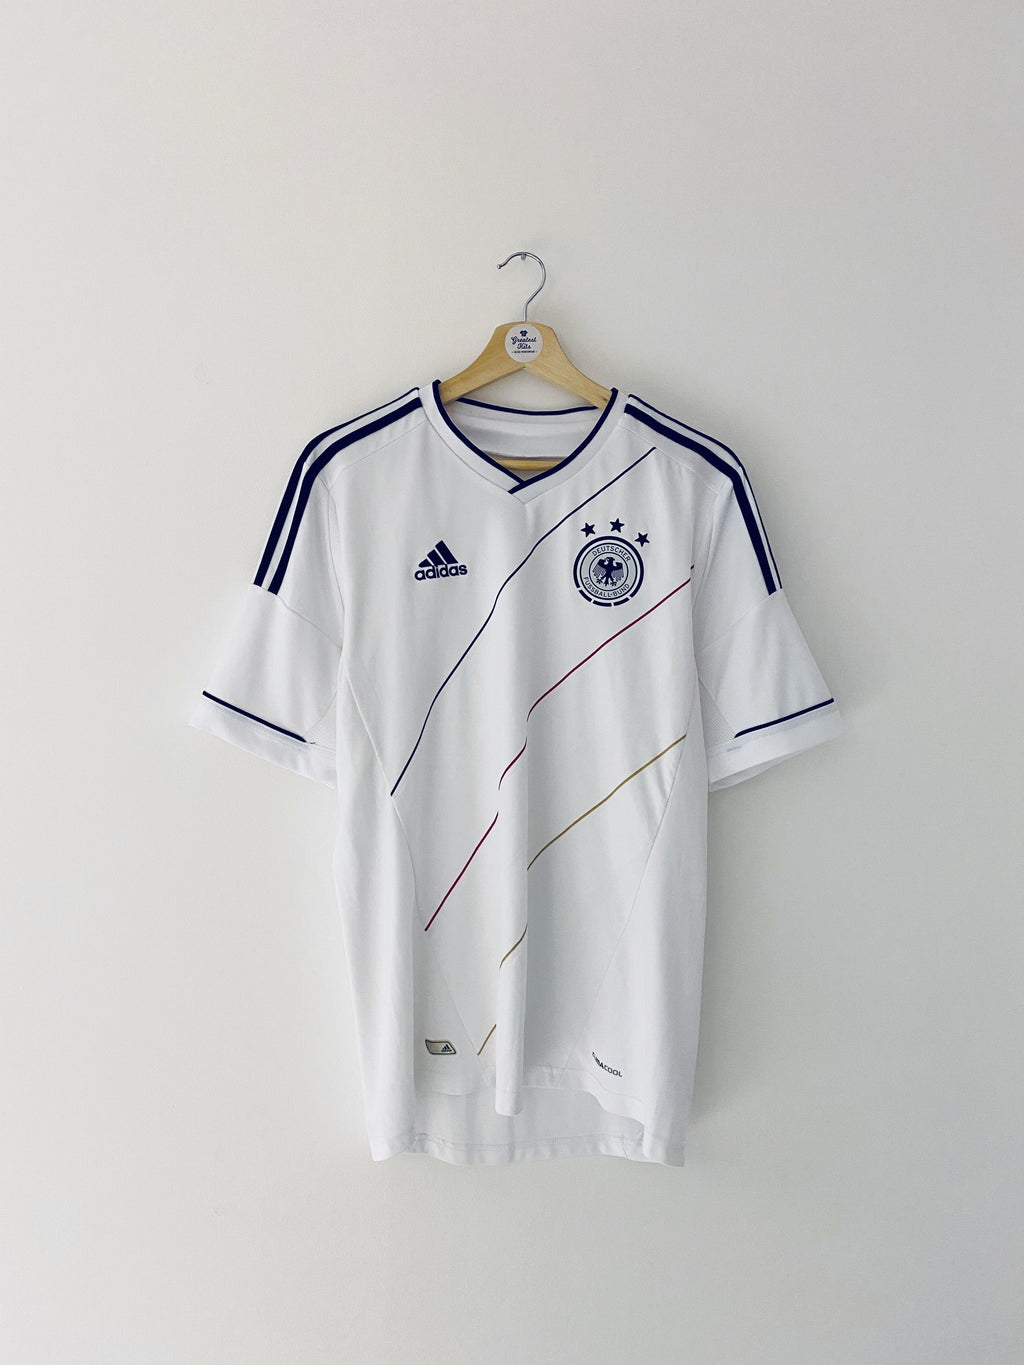 2012/13 Germany Home Shirt (M) 9.5/10